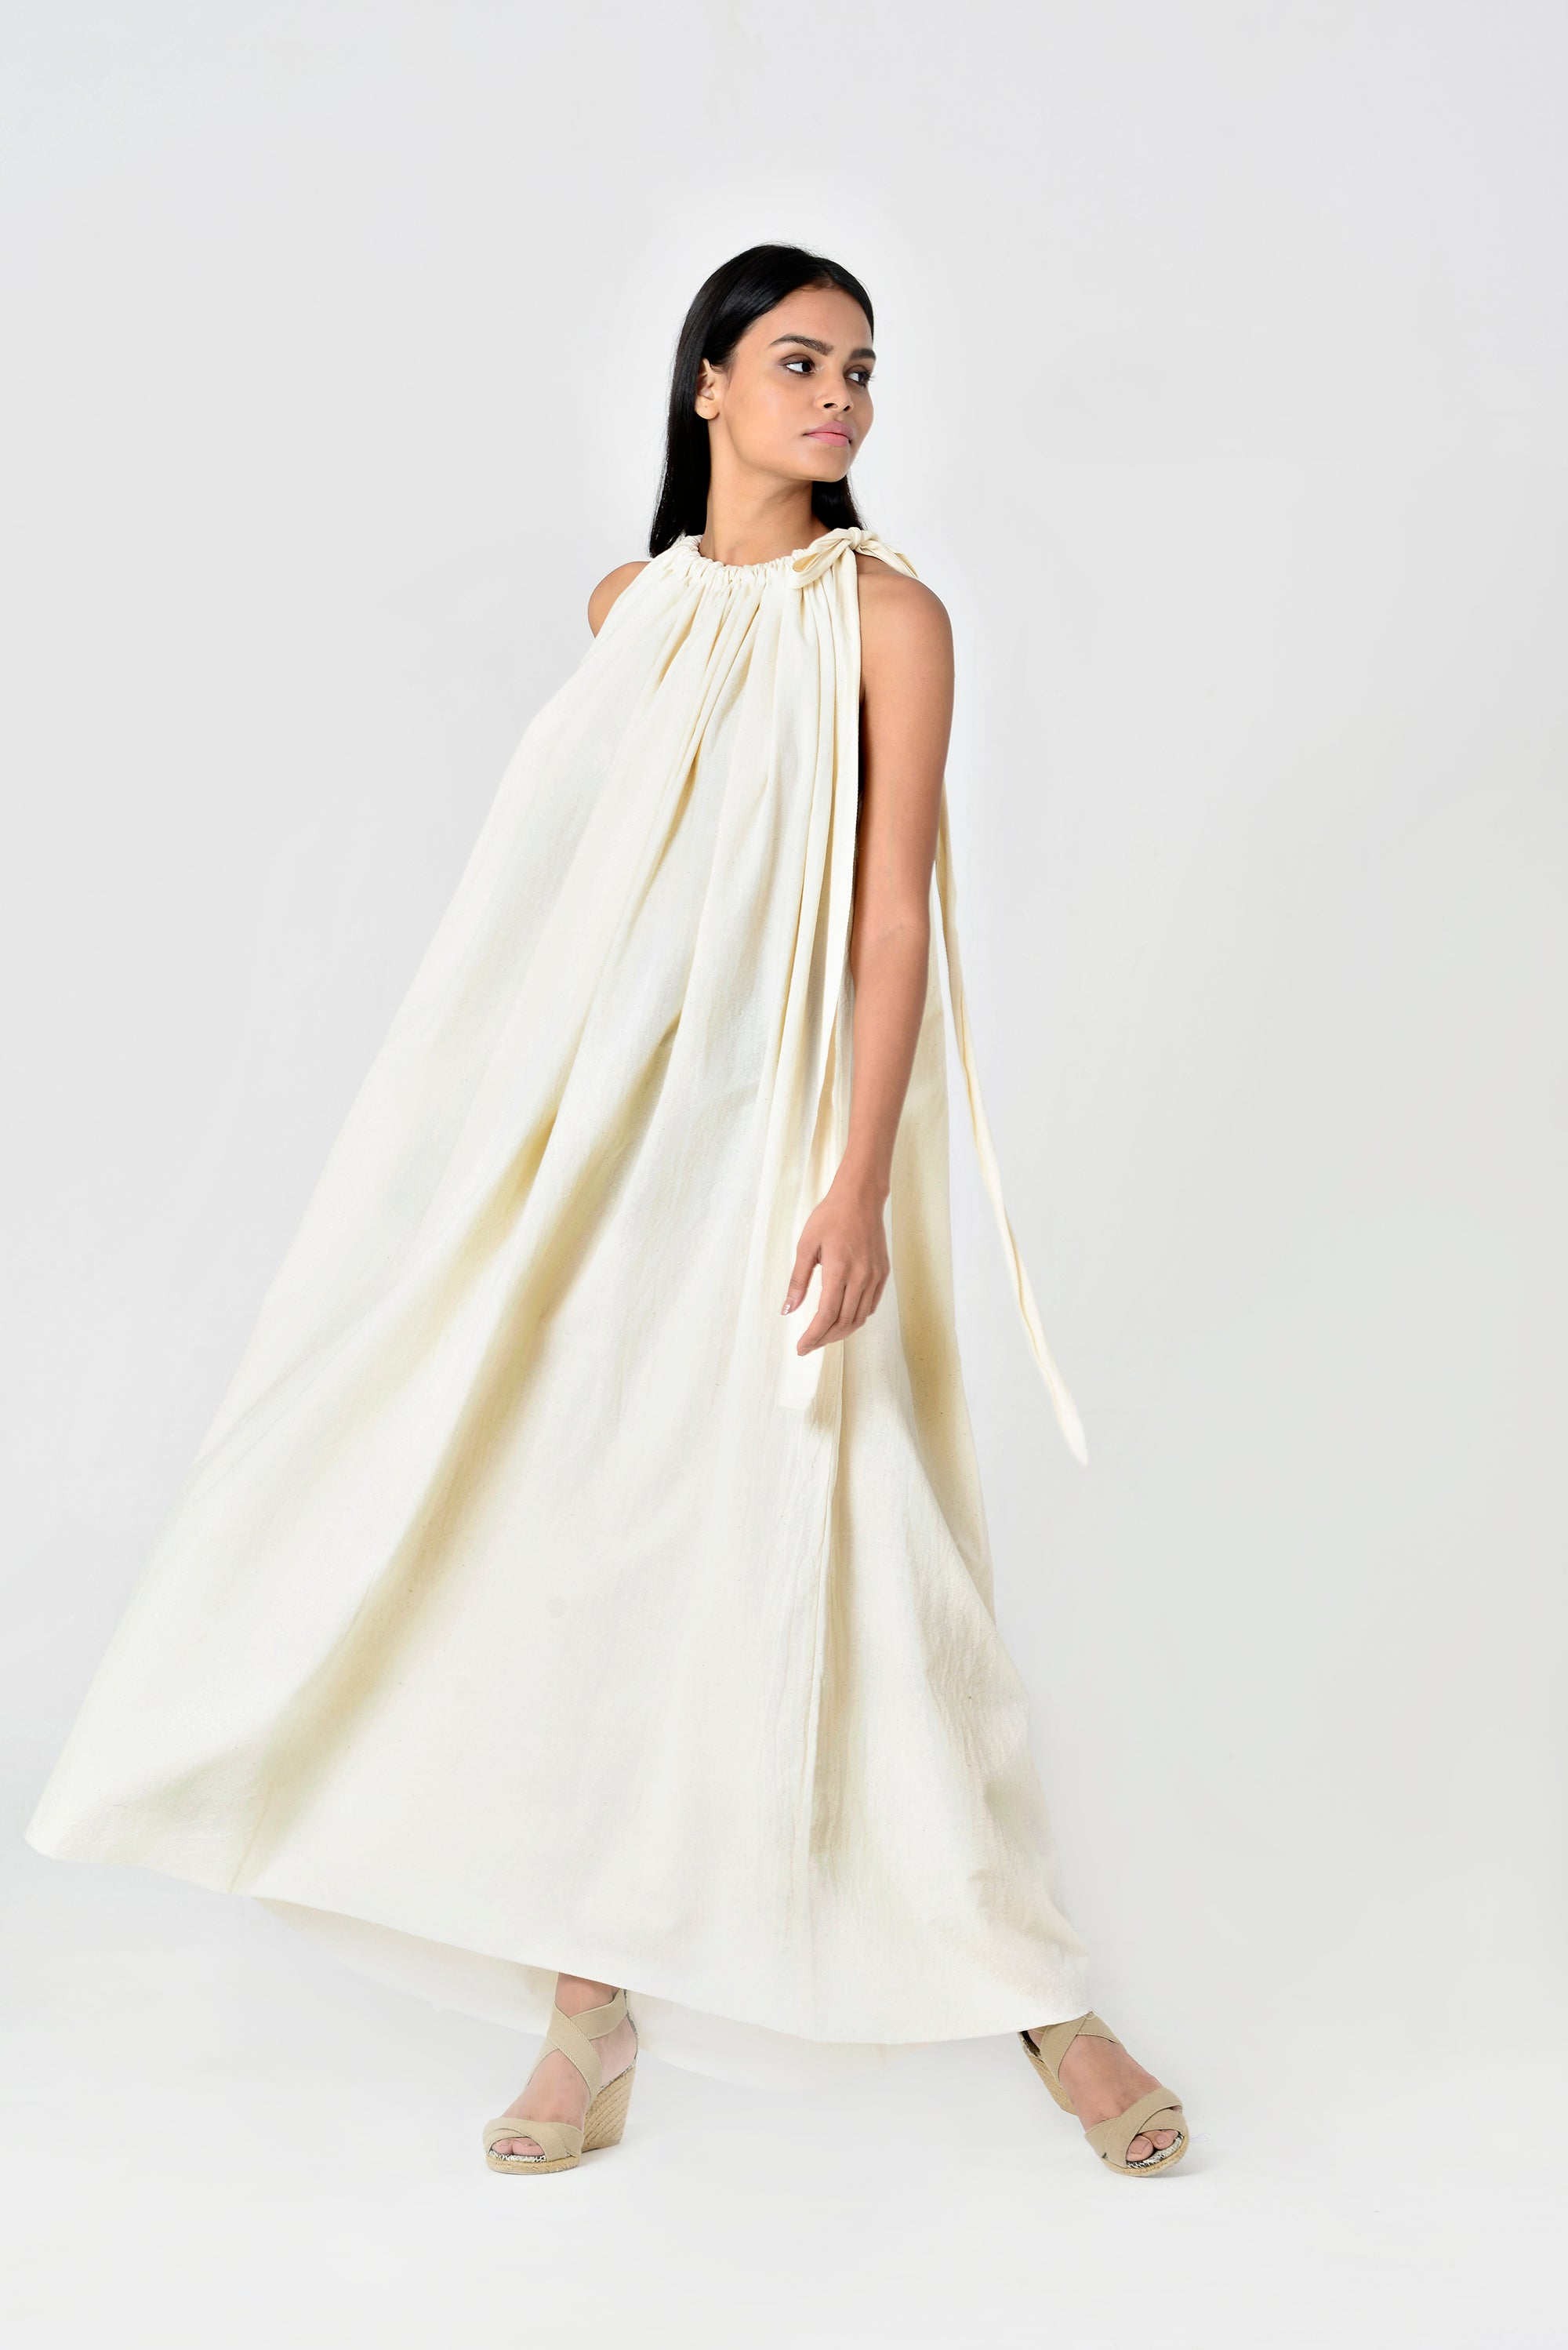 Rania Wang Dress Ivory